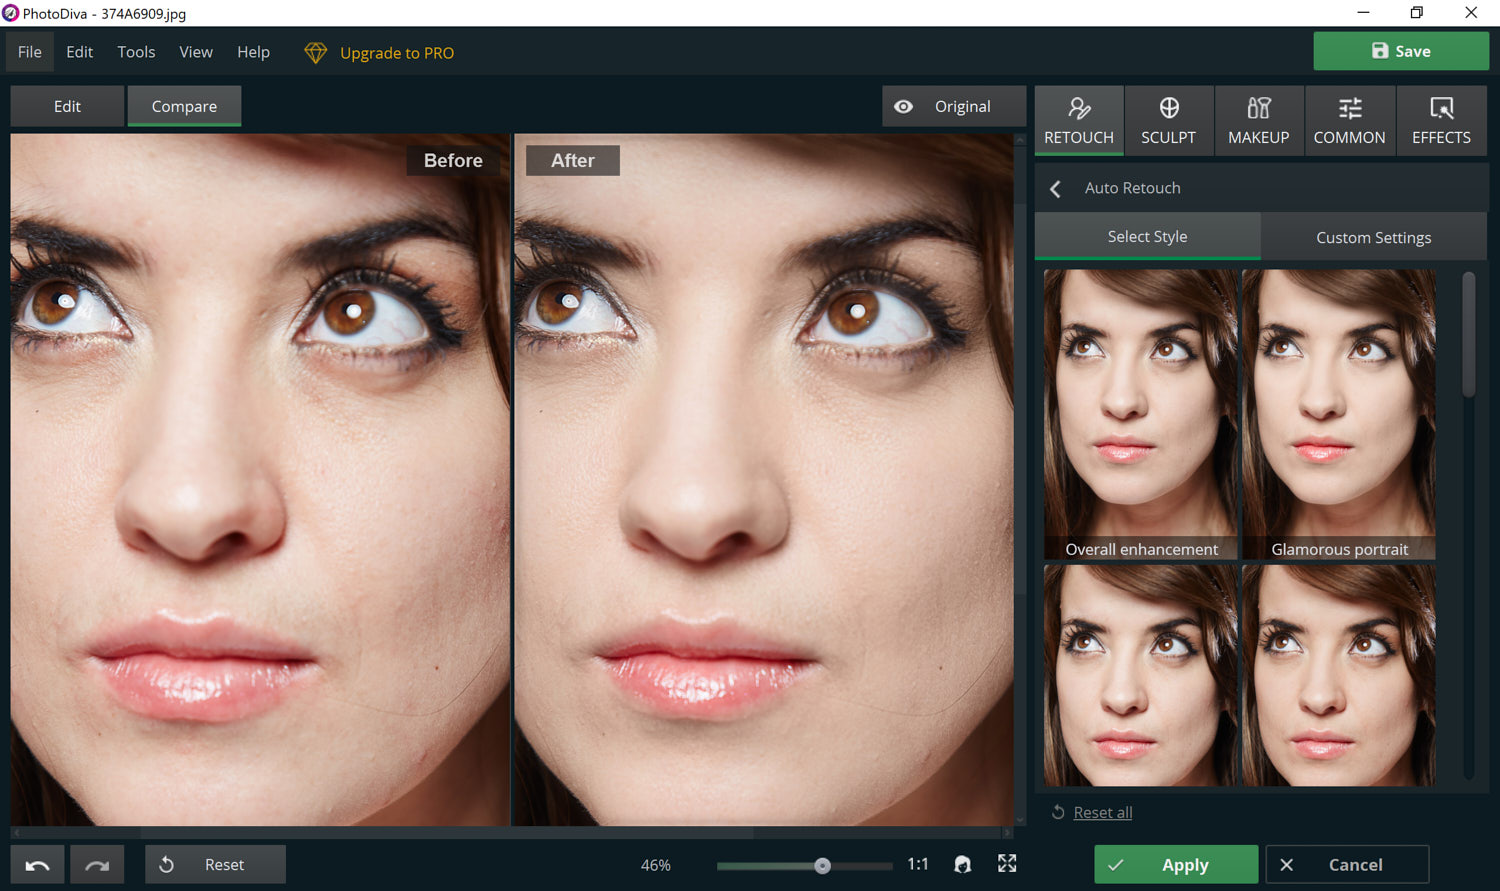 Using PhotoDiva's skin retouching tool